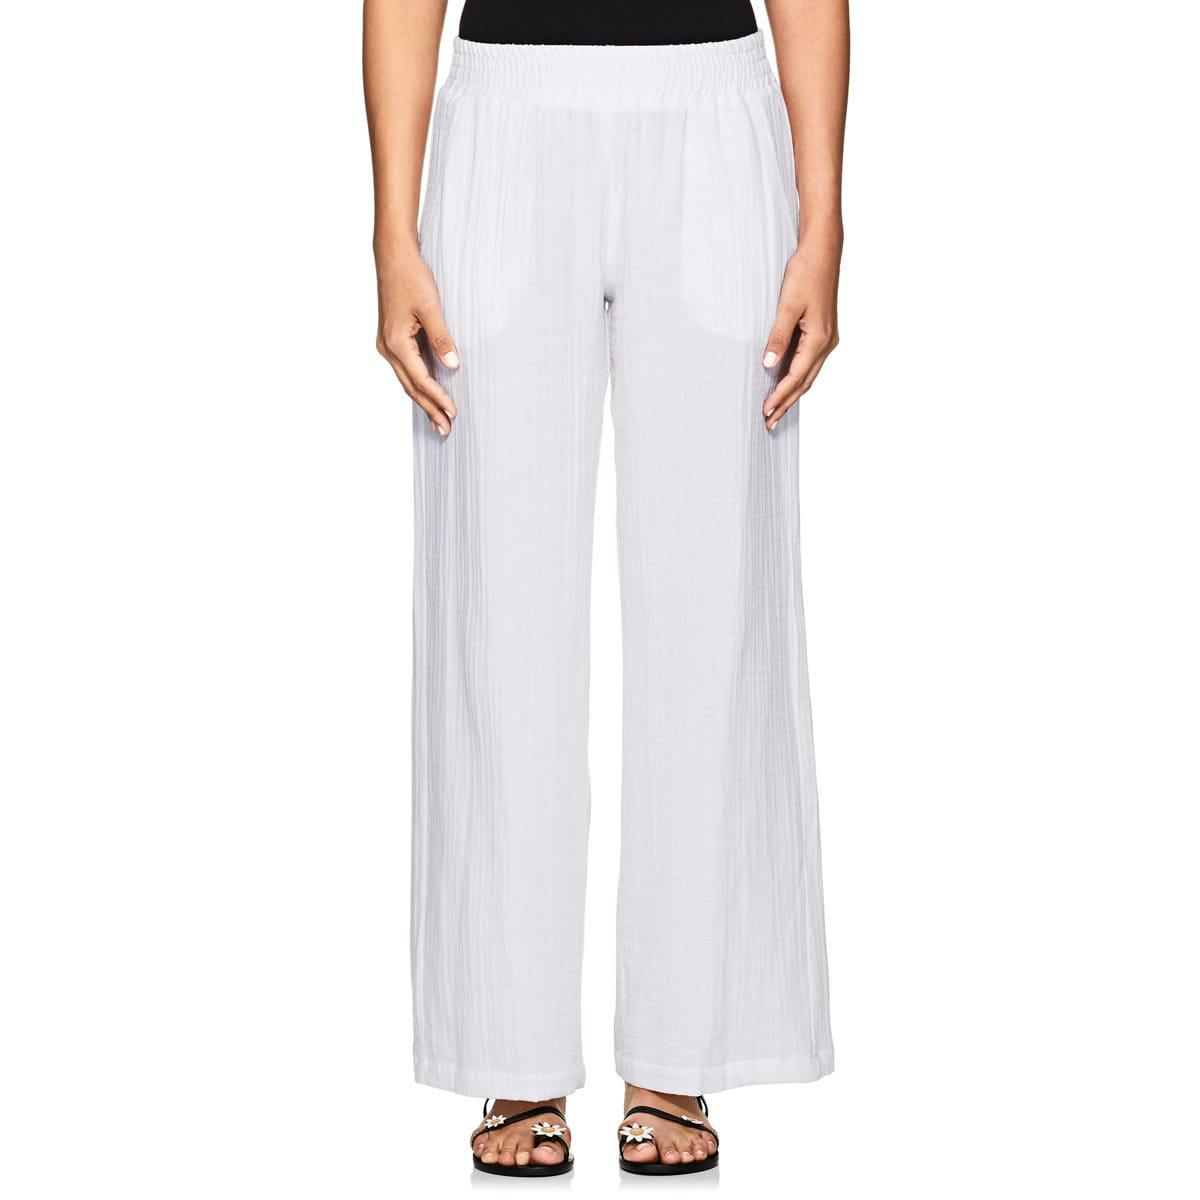 c5d0344aa8c27f Barneys New York Washed Cotton Wide-leg Pants in White - Save 60% - Lyst